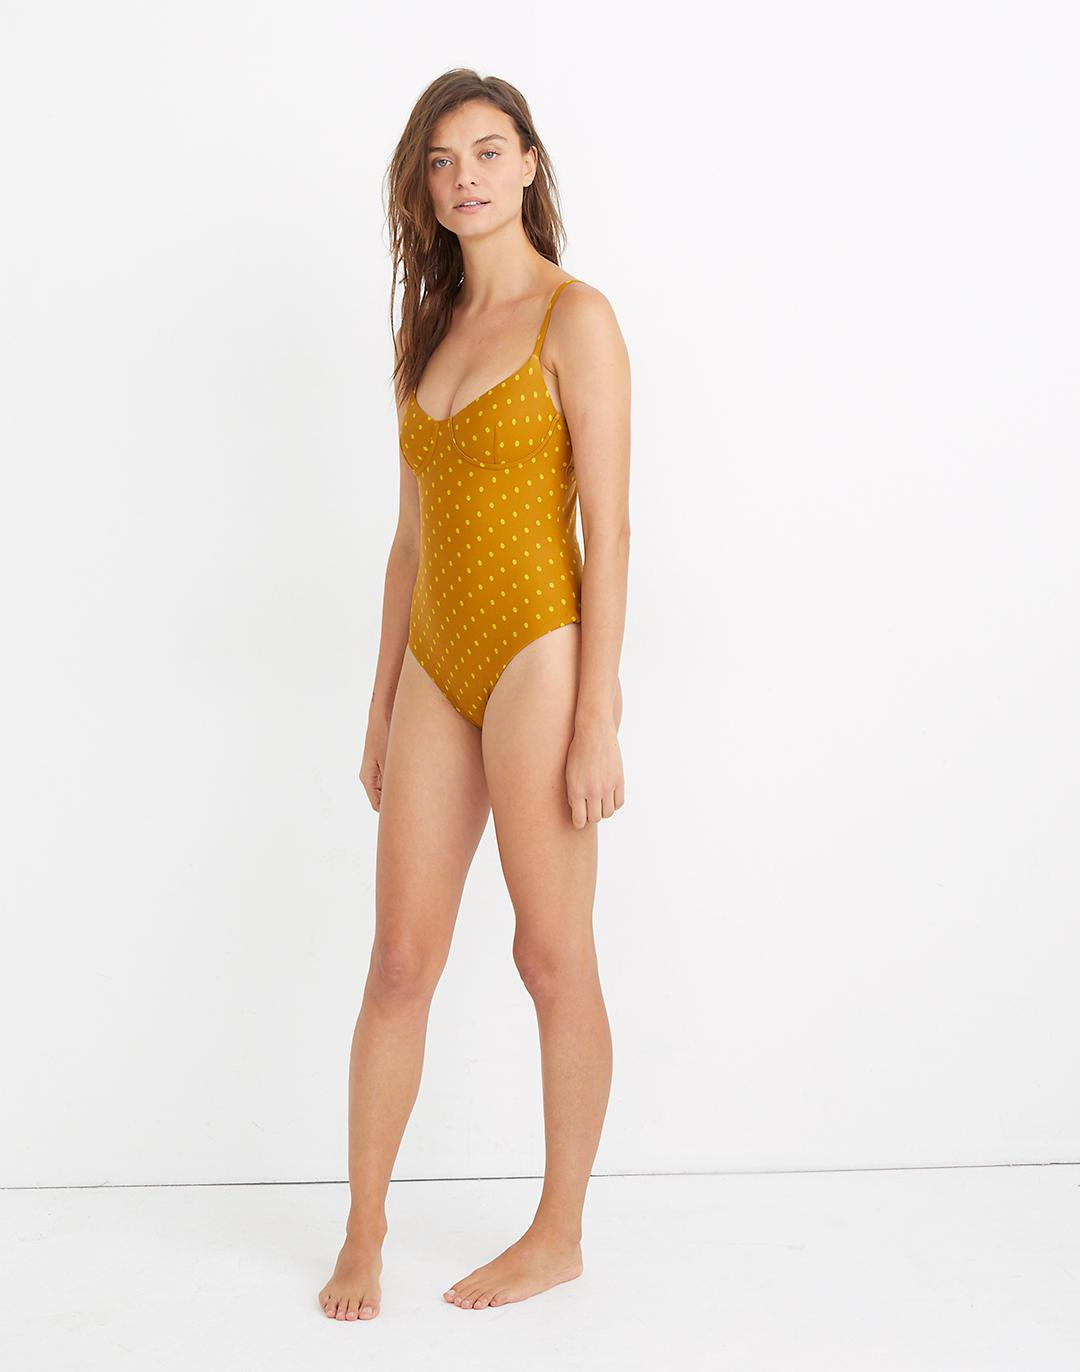 Madewell Second Wave Seamed One-Piece Swimsuit in Polka Dot 1